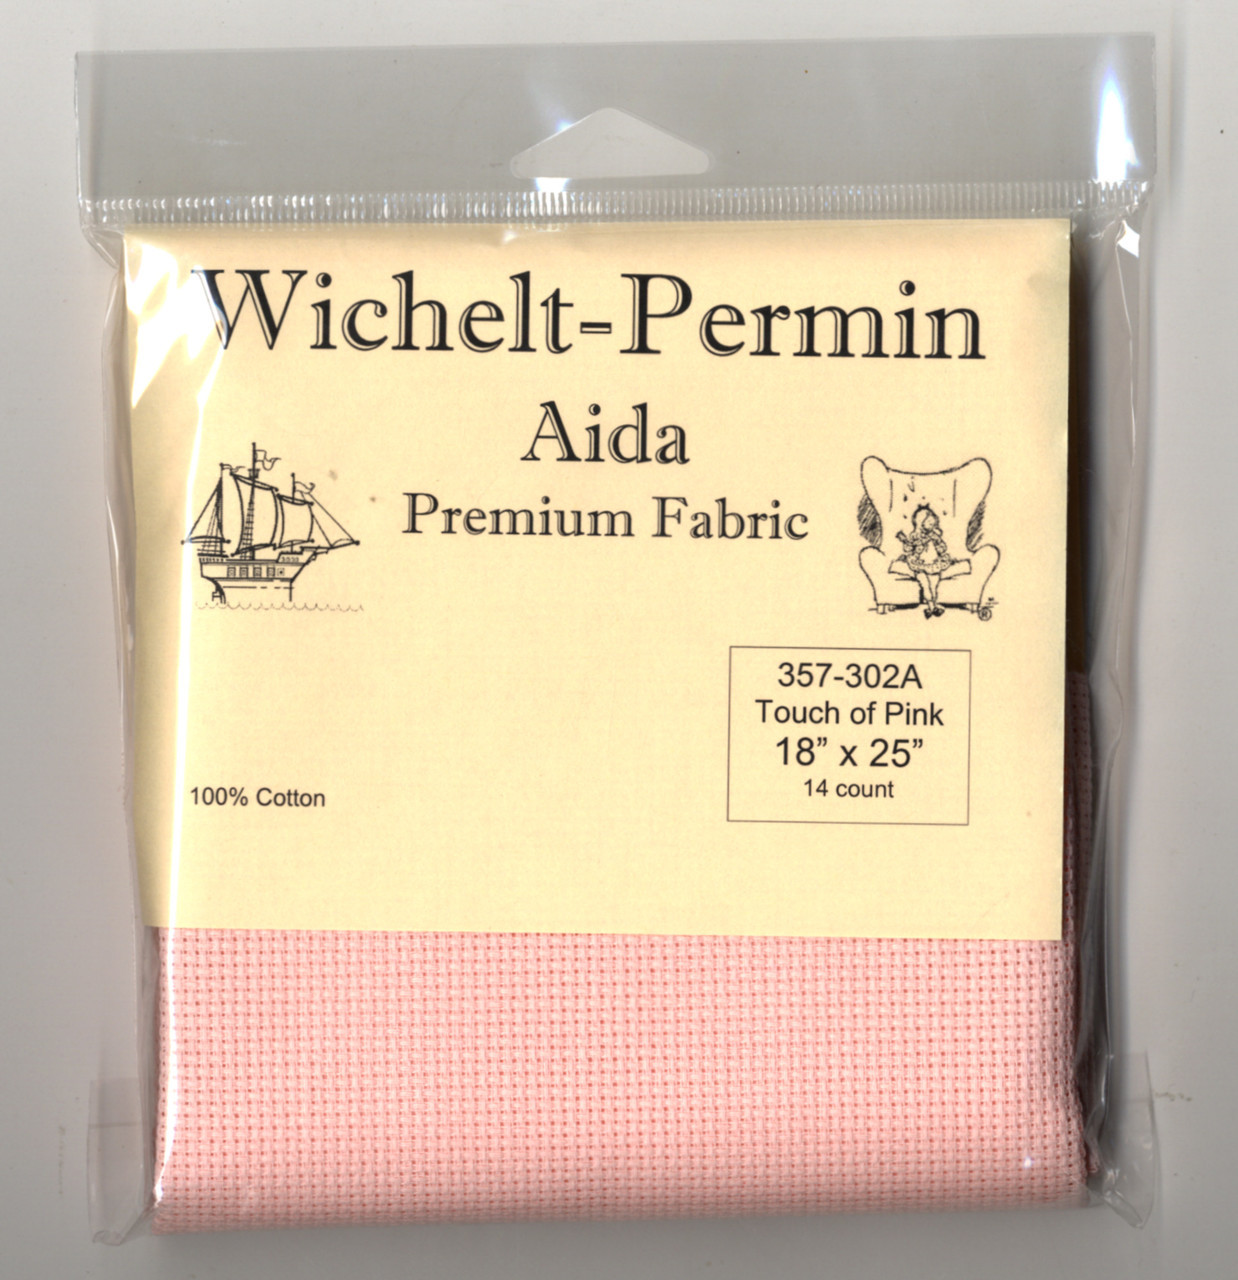 Wichelt - 14 Ct Touch of Pink Aida 18 x 25 in